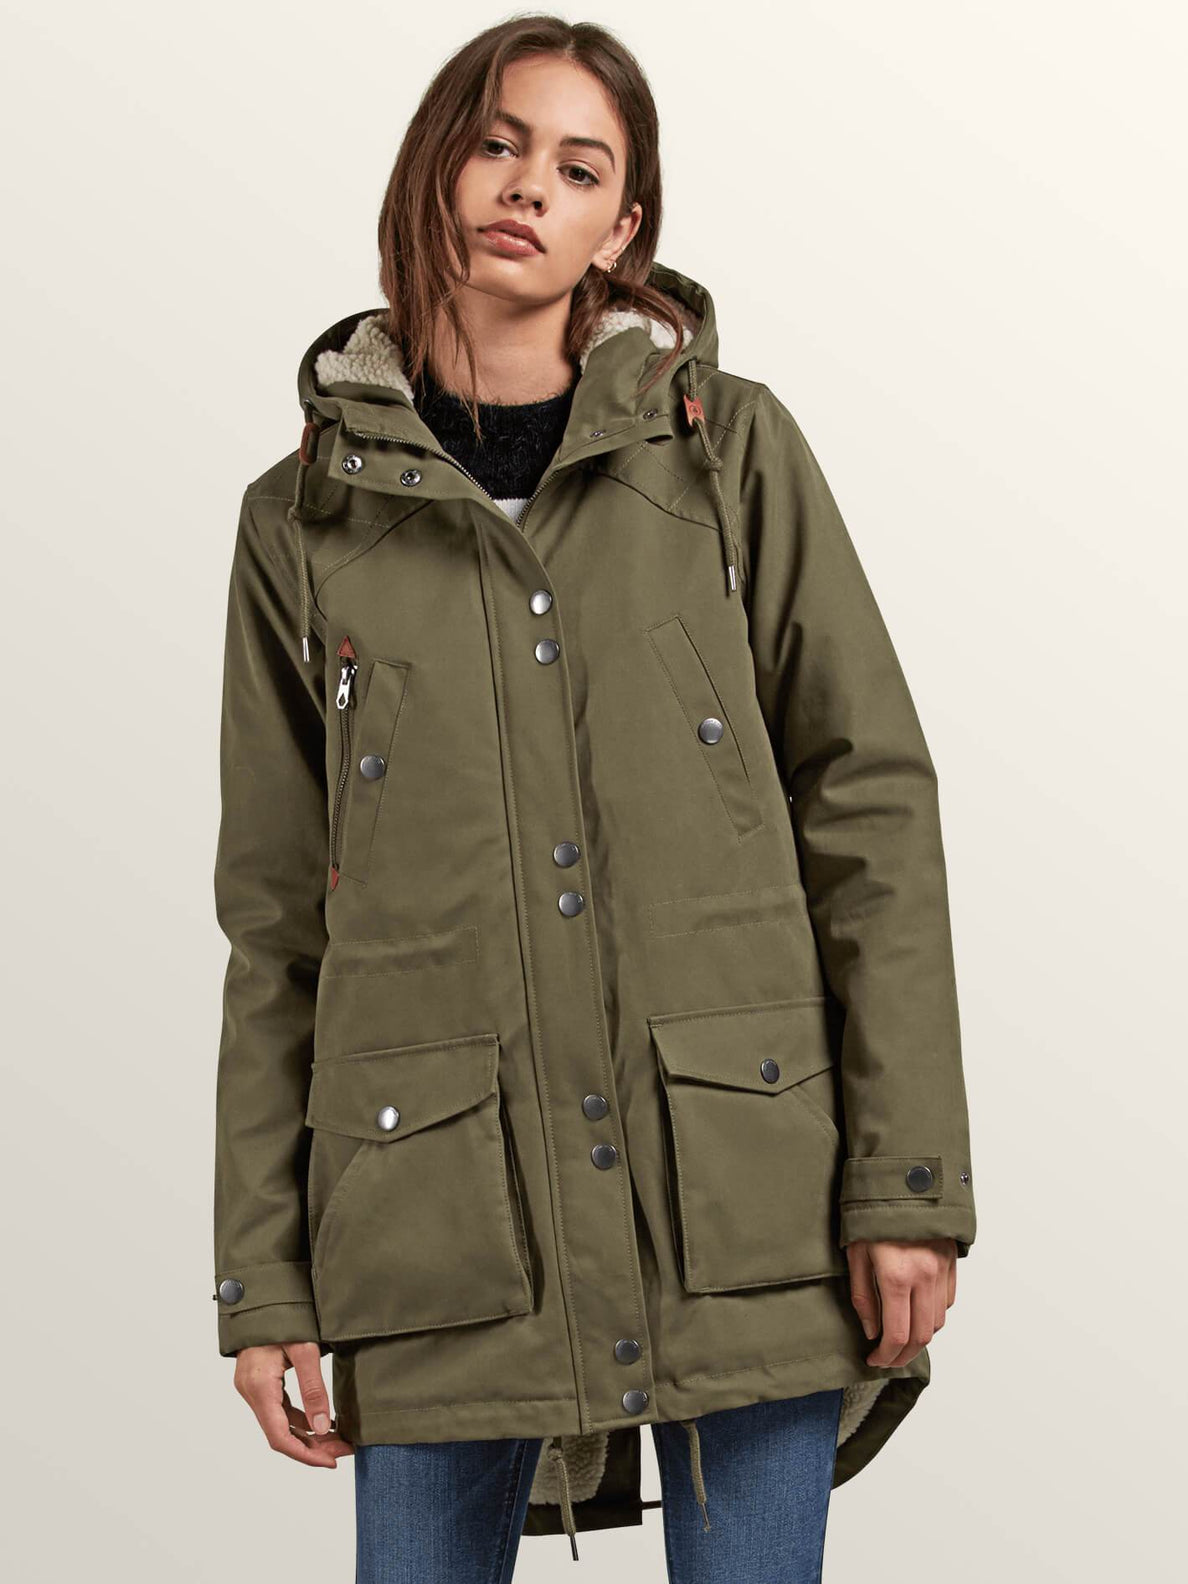 Walk On By Parka In Dark Camo, Front View